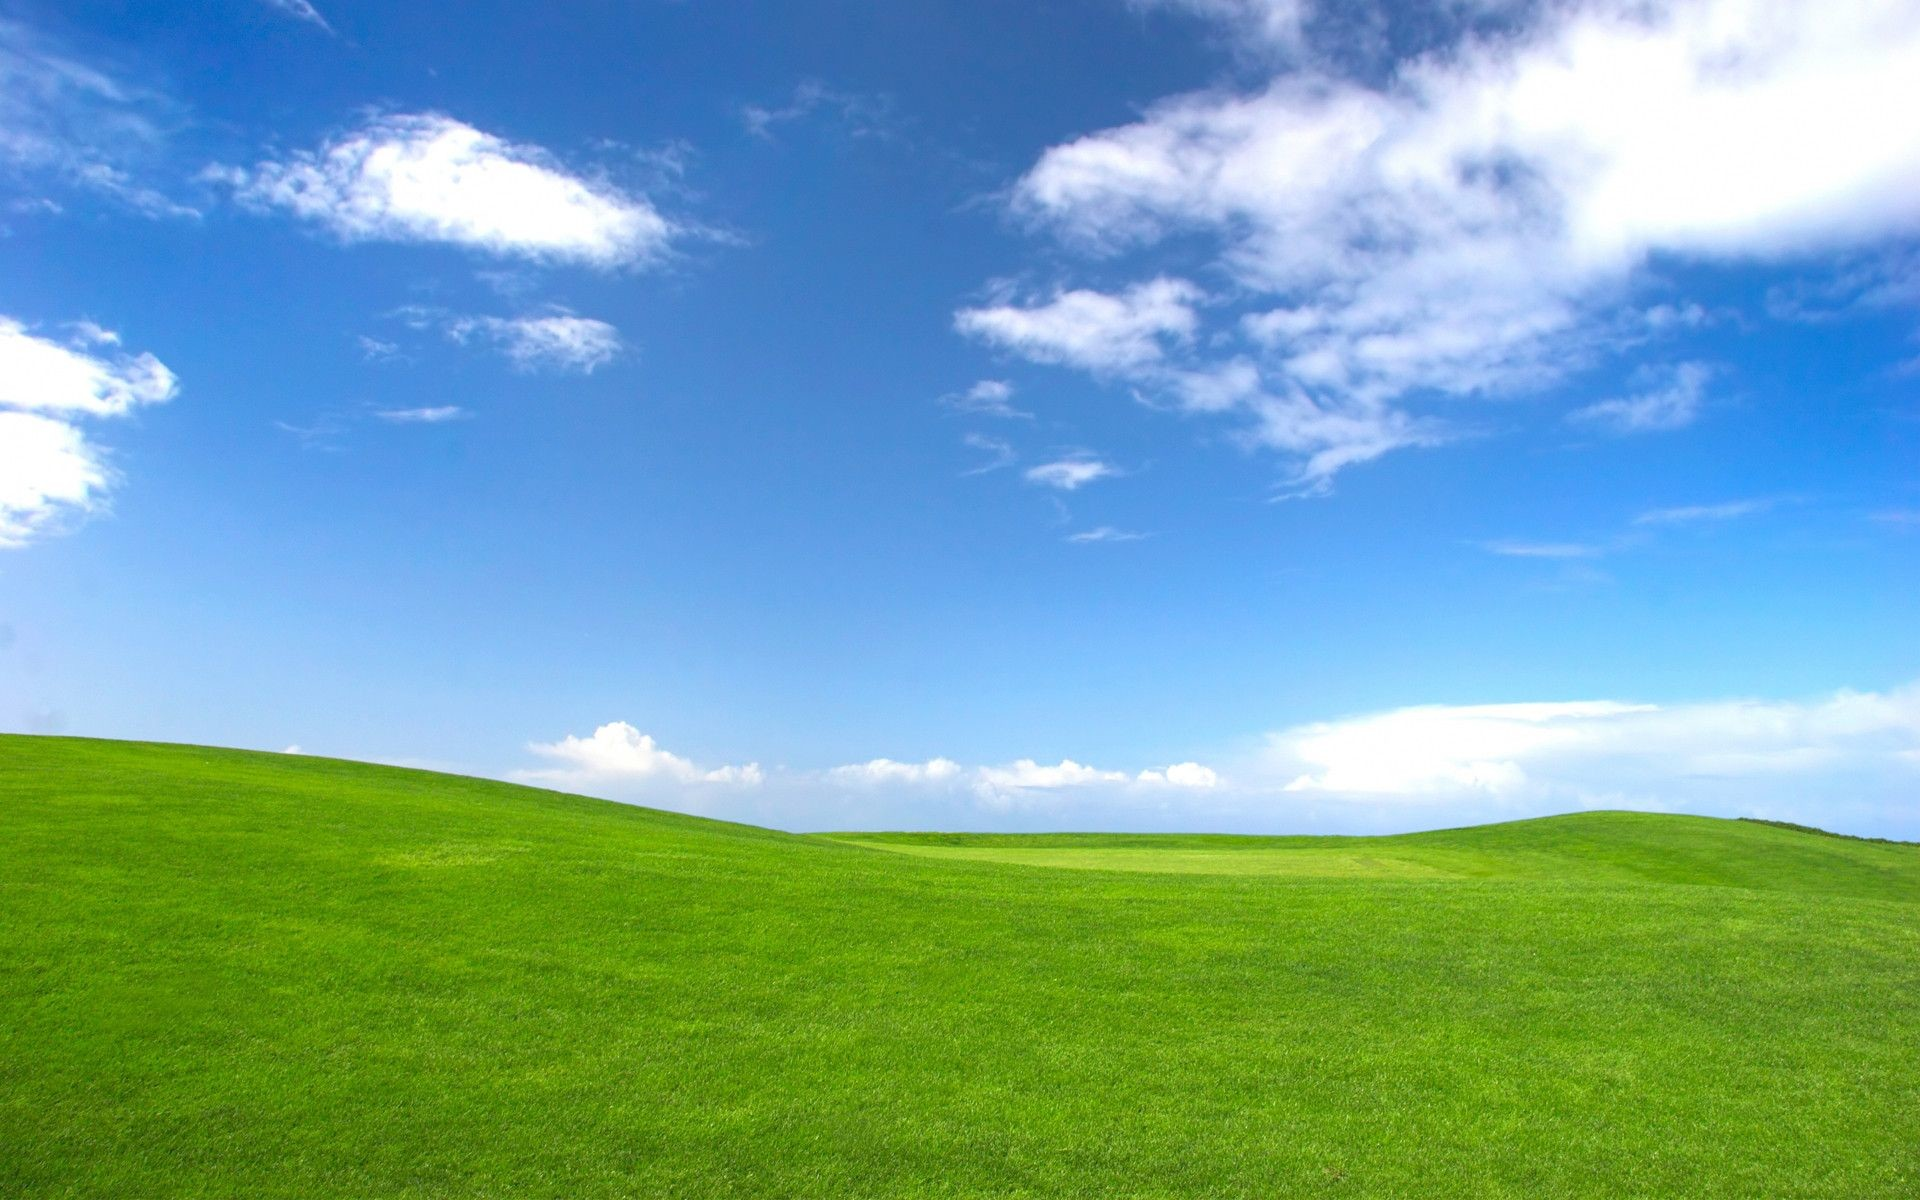 Windows Xp Desktop Wallpaper 41 Pictures